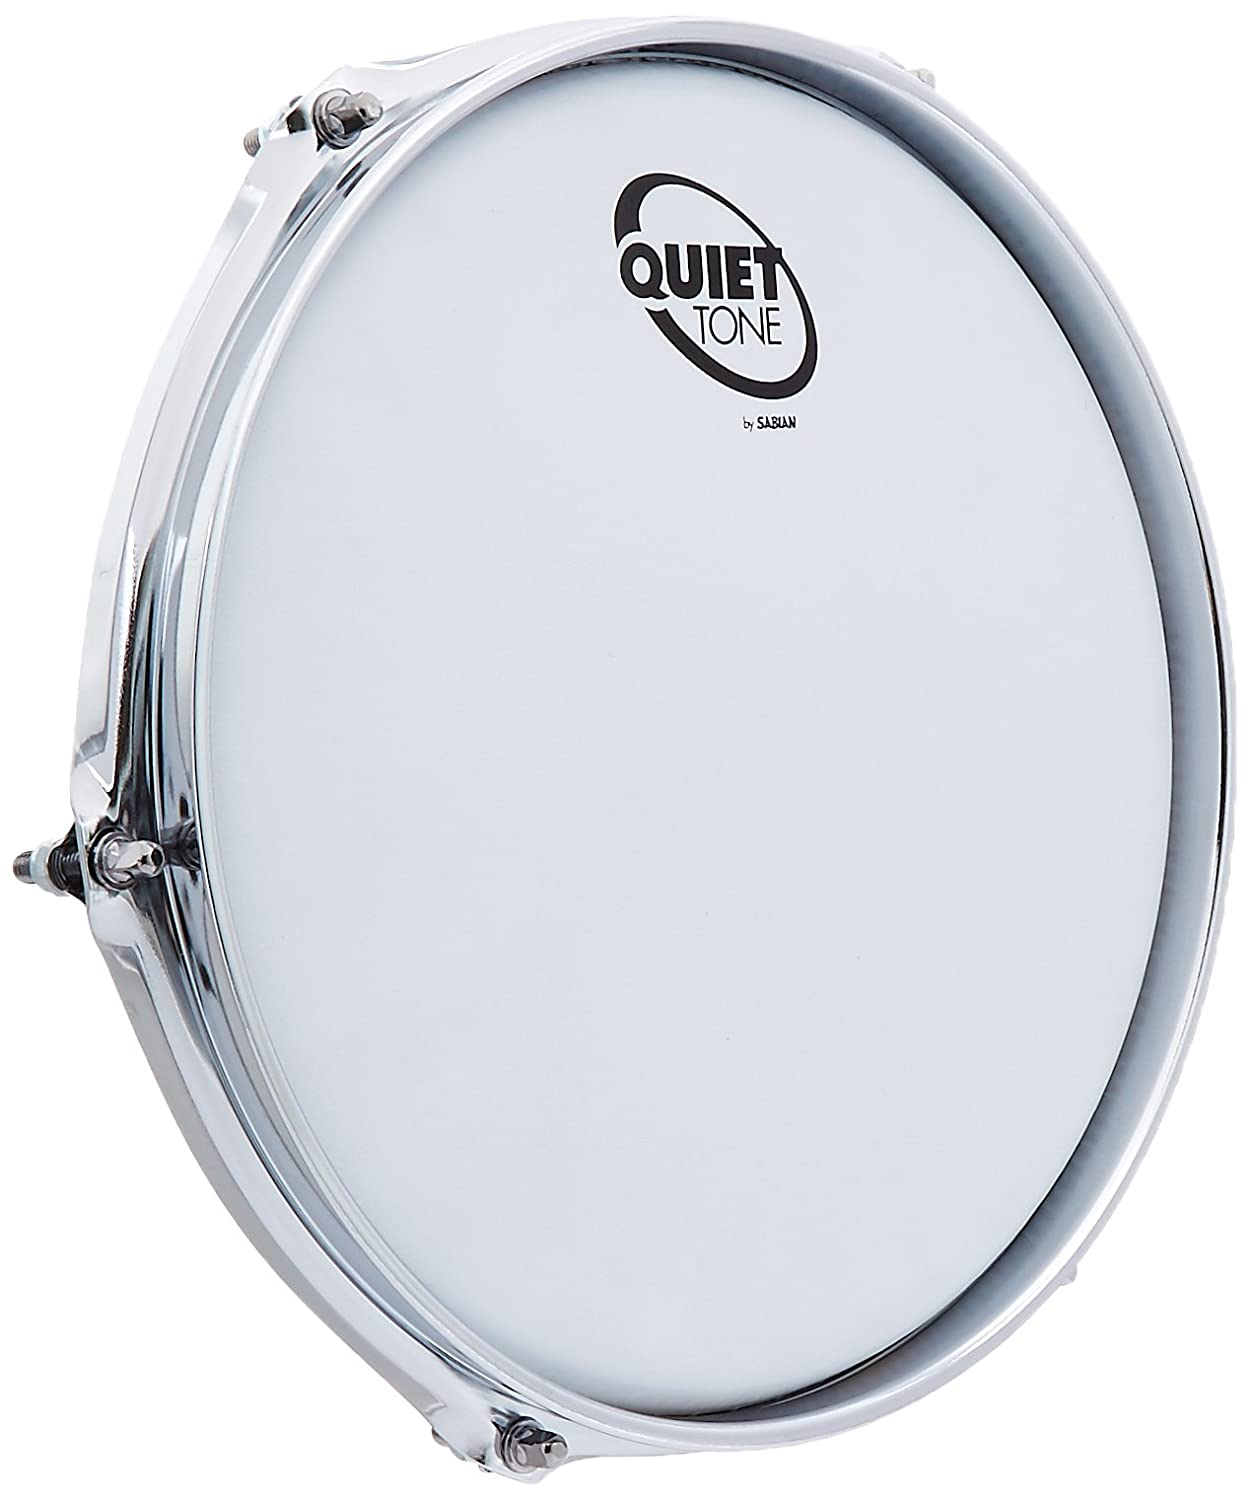 Sabian Performance Accessories QT-10SD Drum Mute Practice Pad Snare, 10 Inch Sabian Inc.